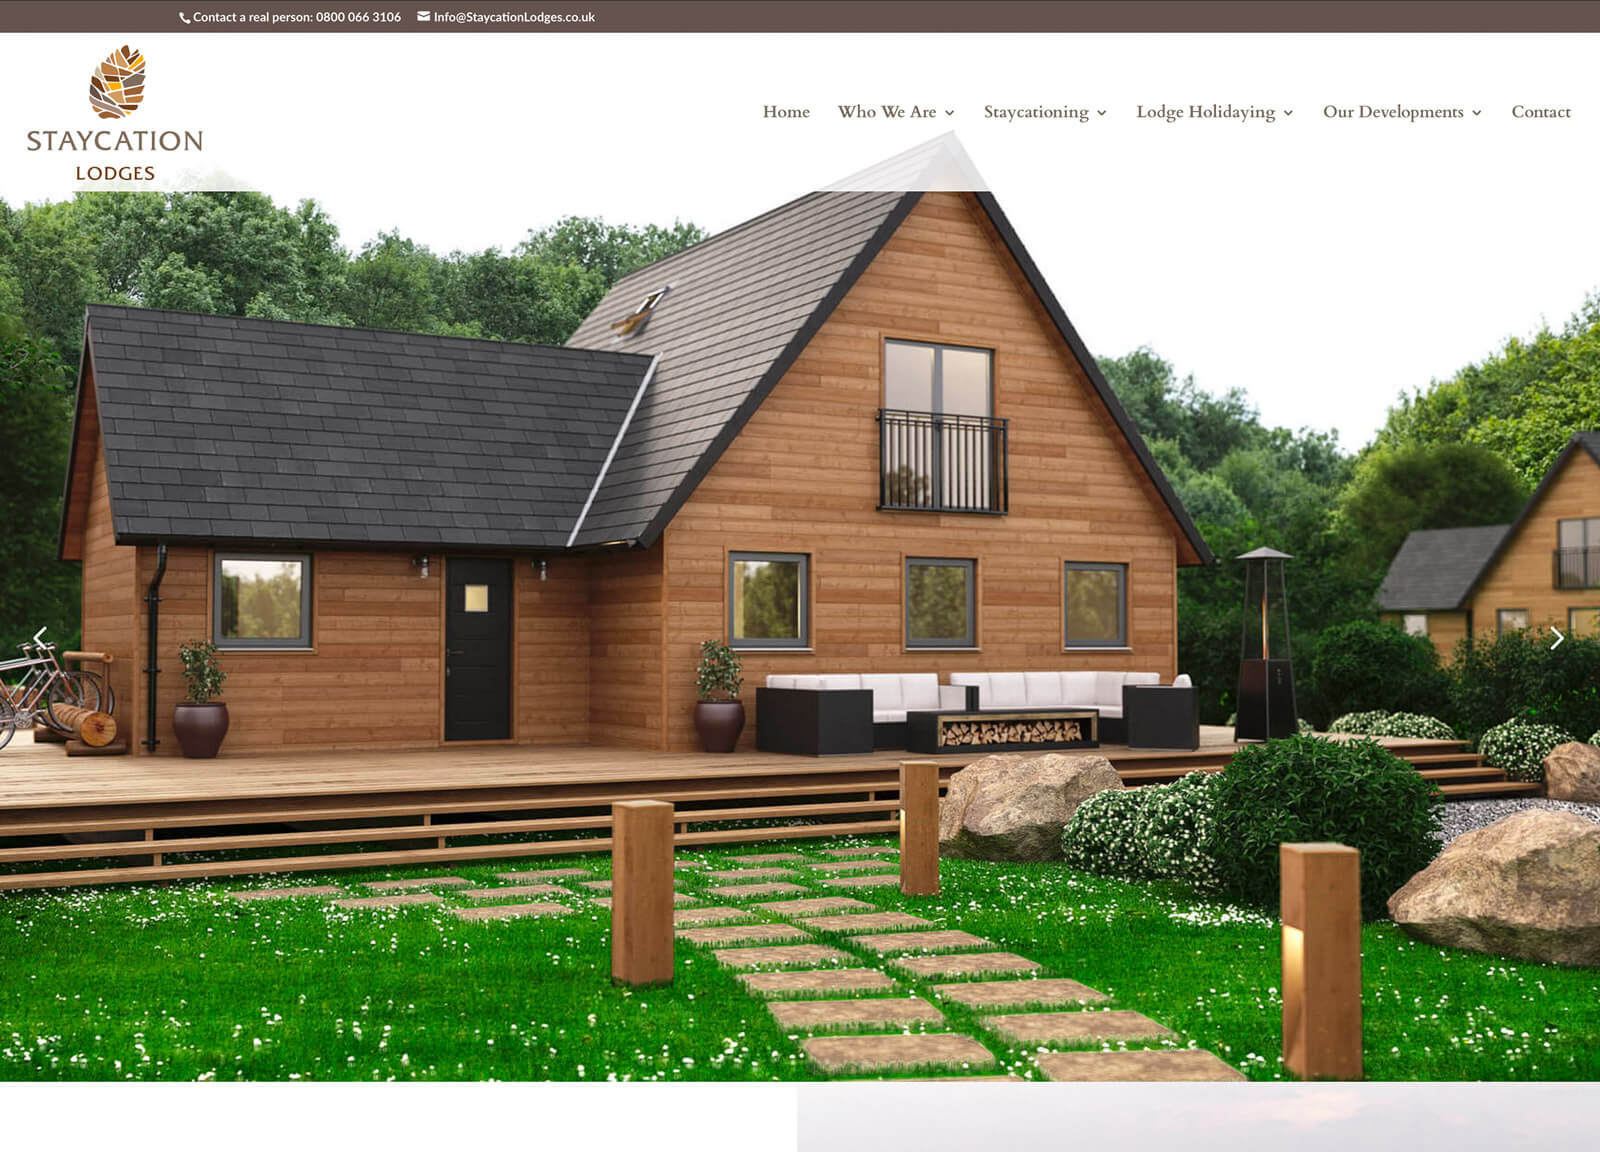 holiday resort website - home page